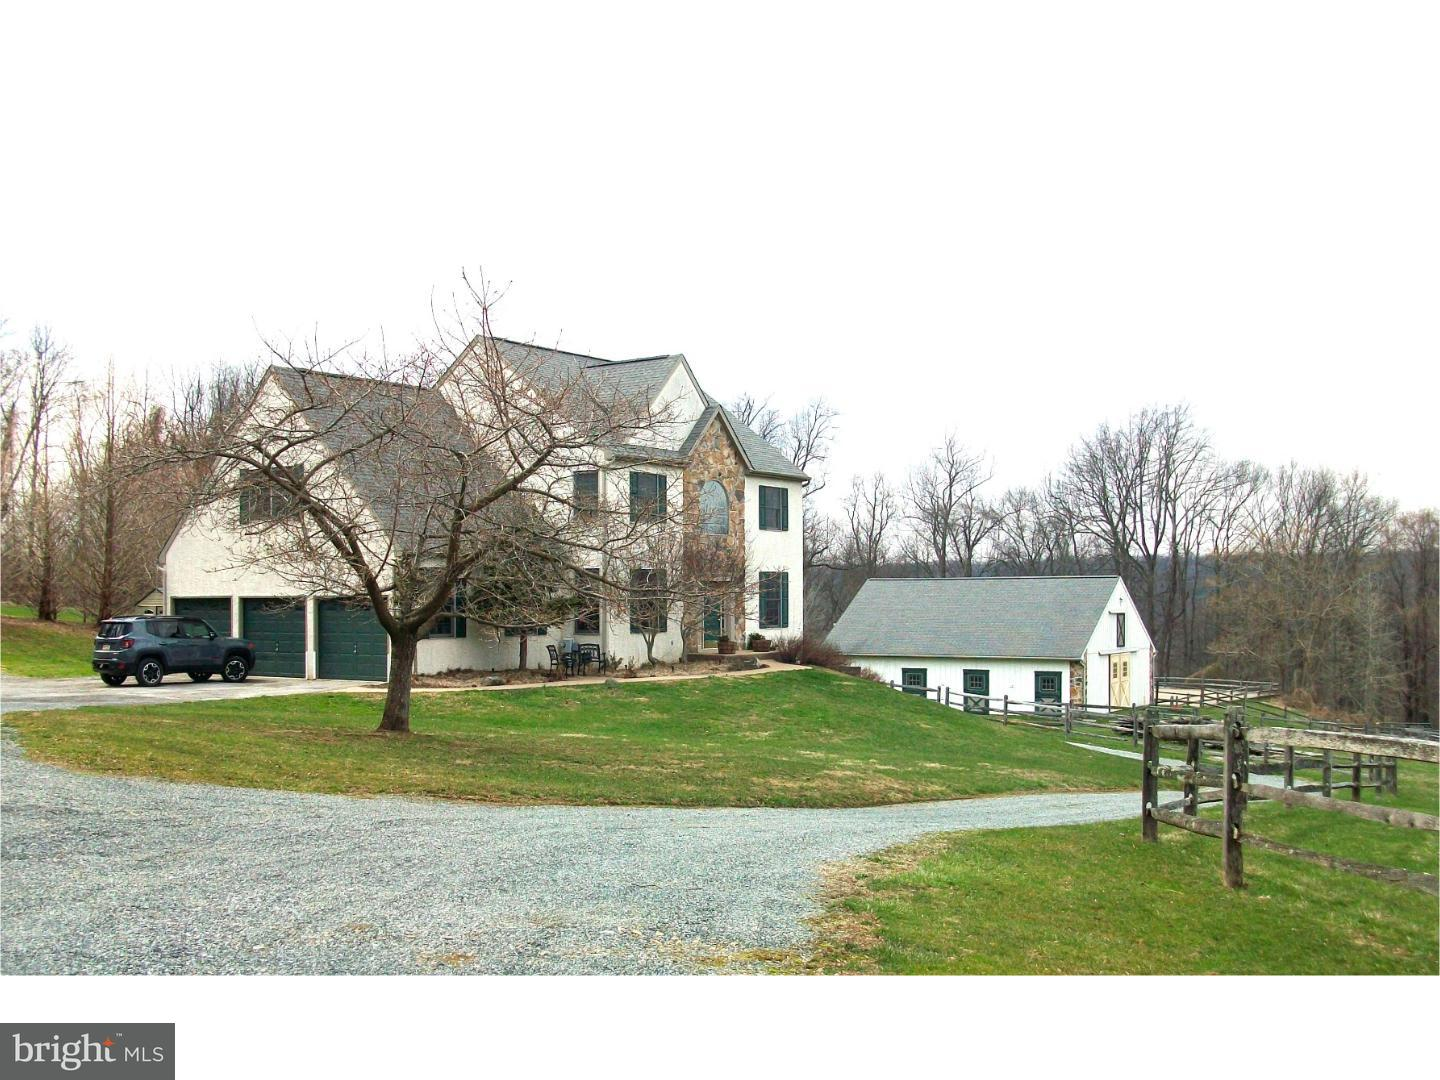 271B HILL RD, ELVERSON - Listed at $750,000, ELVERSON